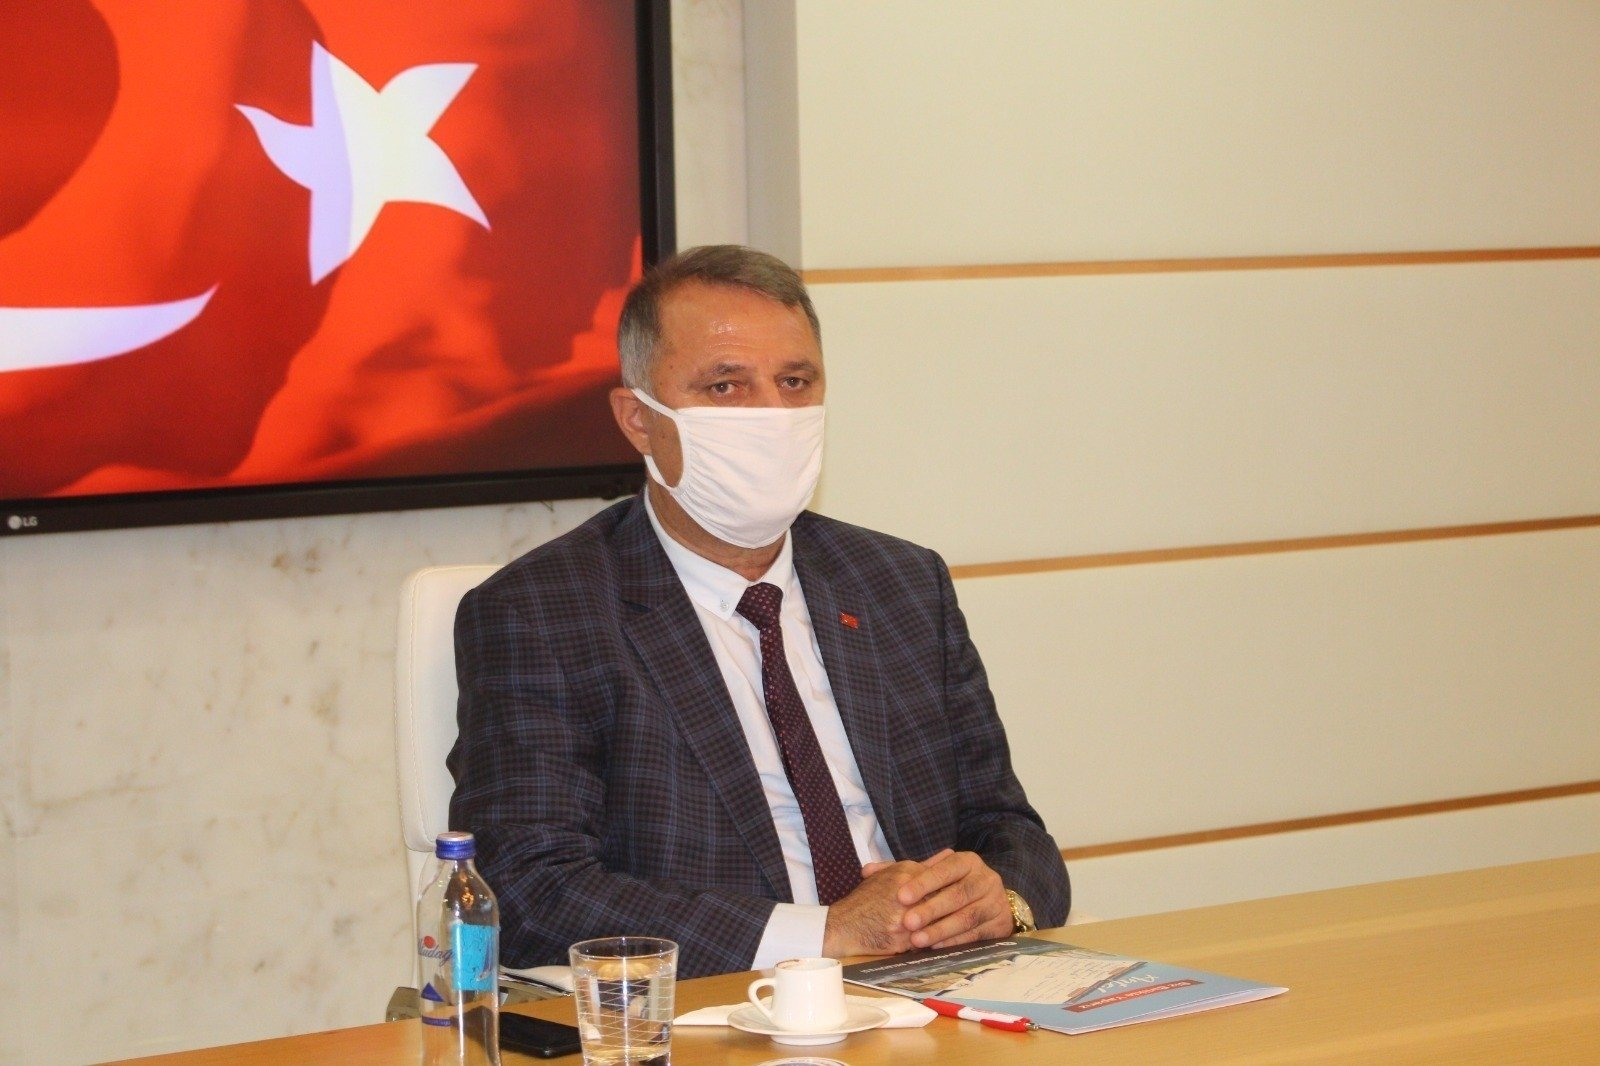 The Republican People's Party's (CHP) former Antalya provincial head, Nusret Bayar, in Antalya, Turkey, April 13, 2021. (AA)